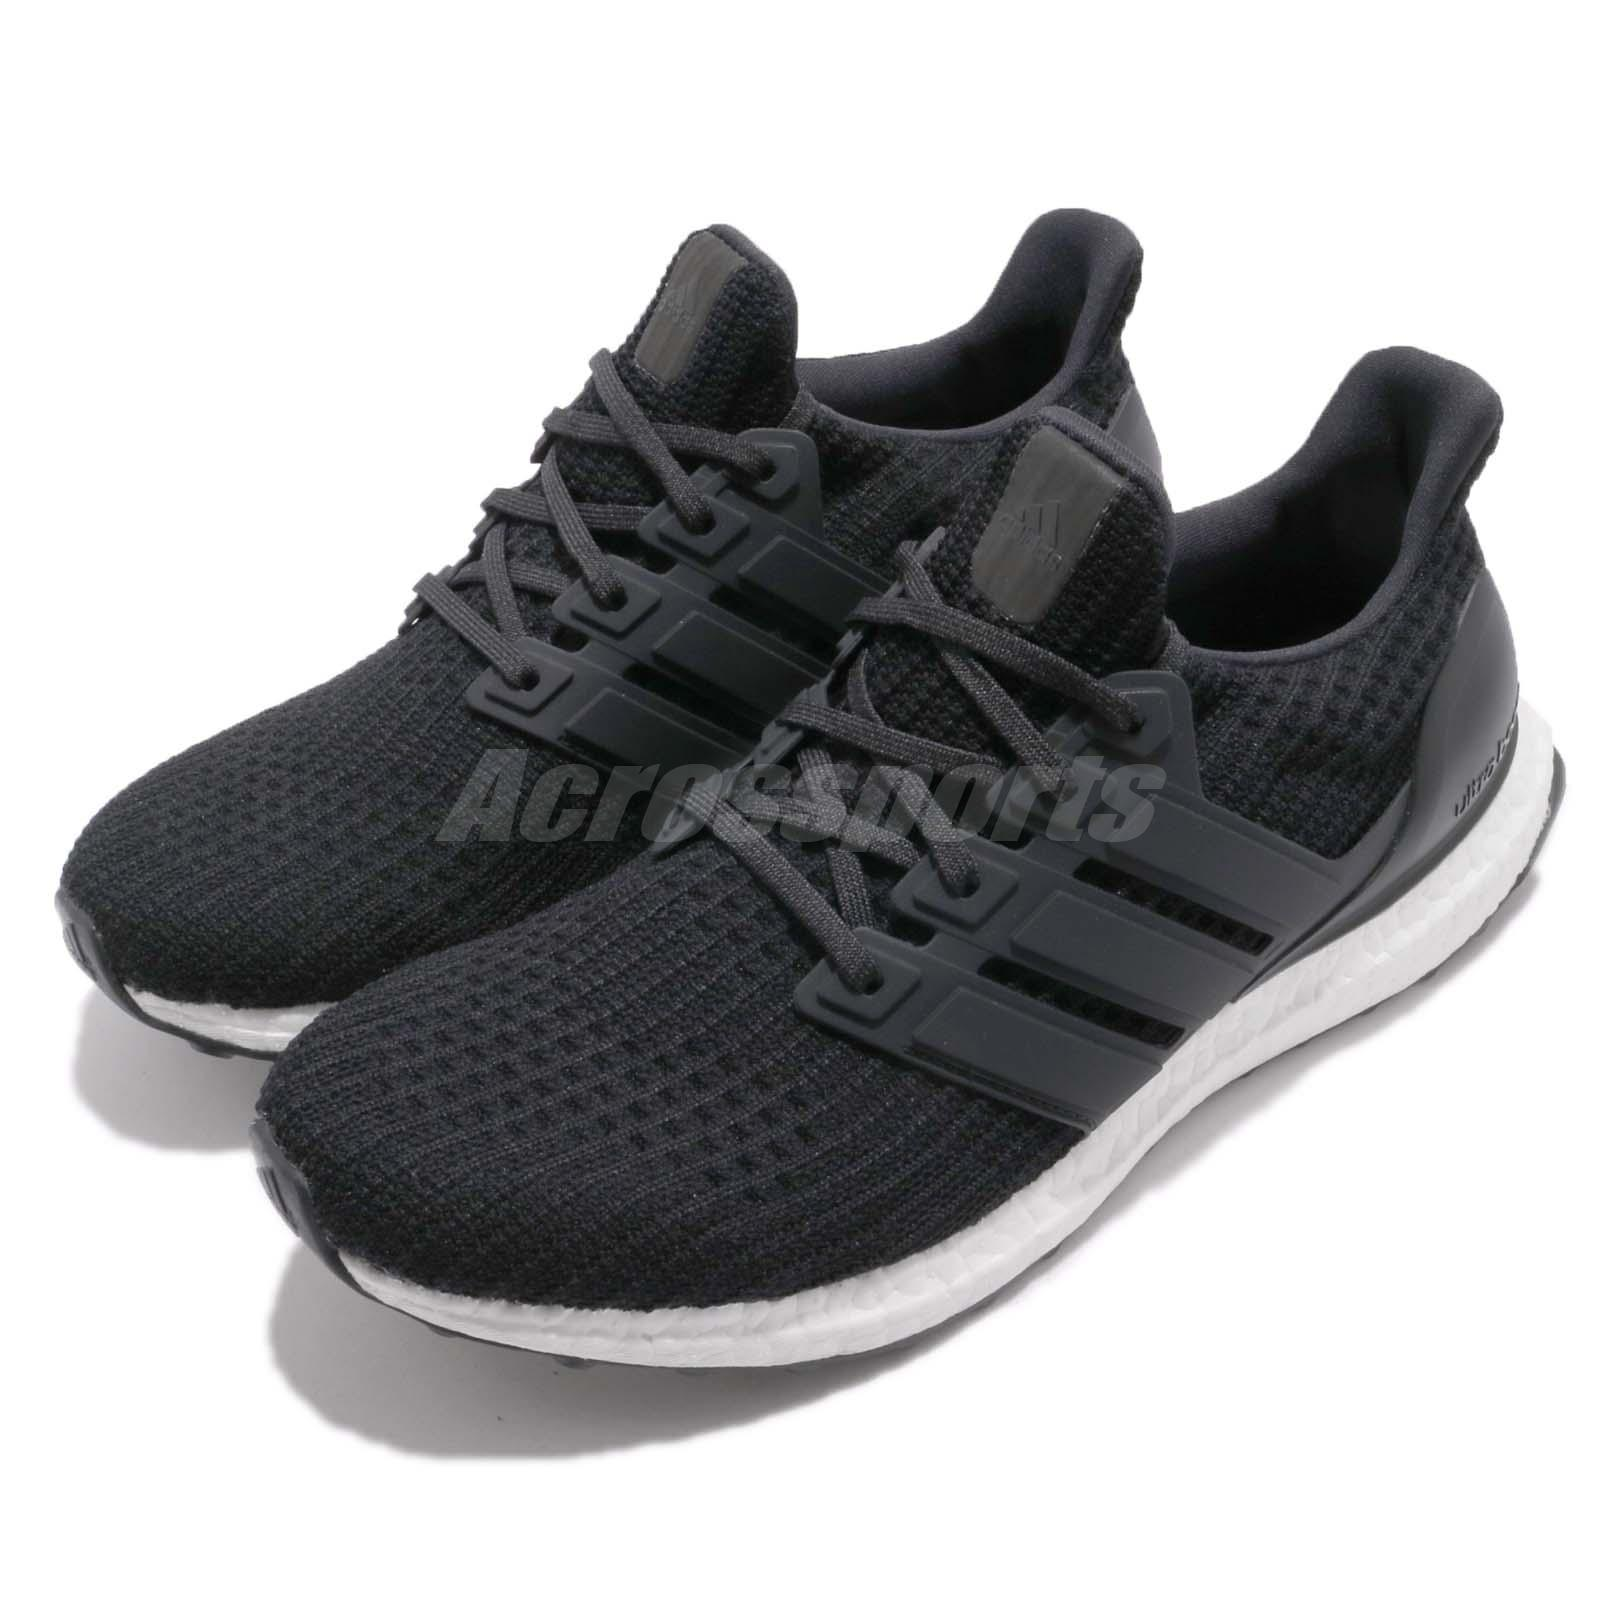 87dfa7ffc223a Details about adidas UltraBOOST 4.0 Core Black Cloud White Mens Running  Shoes Sneakers BB6166